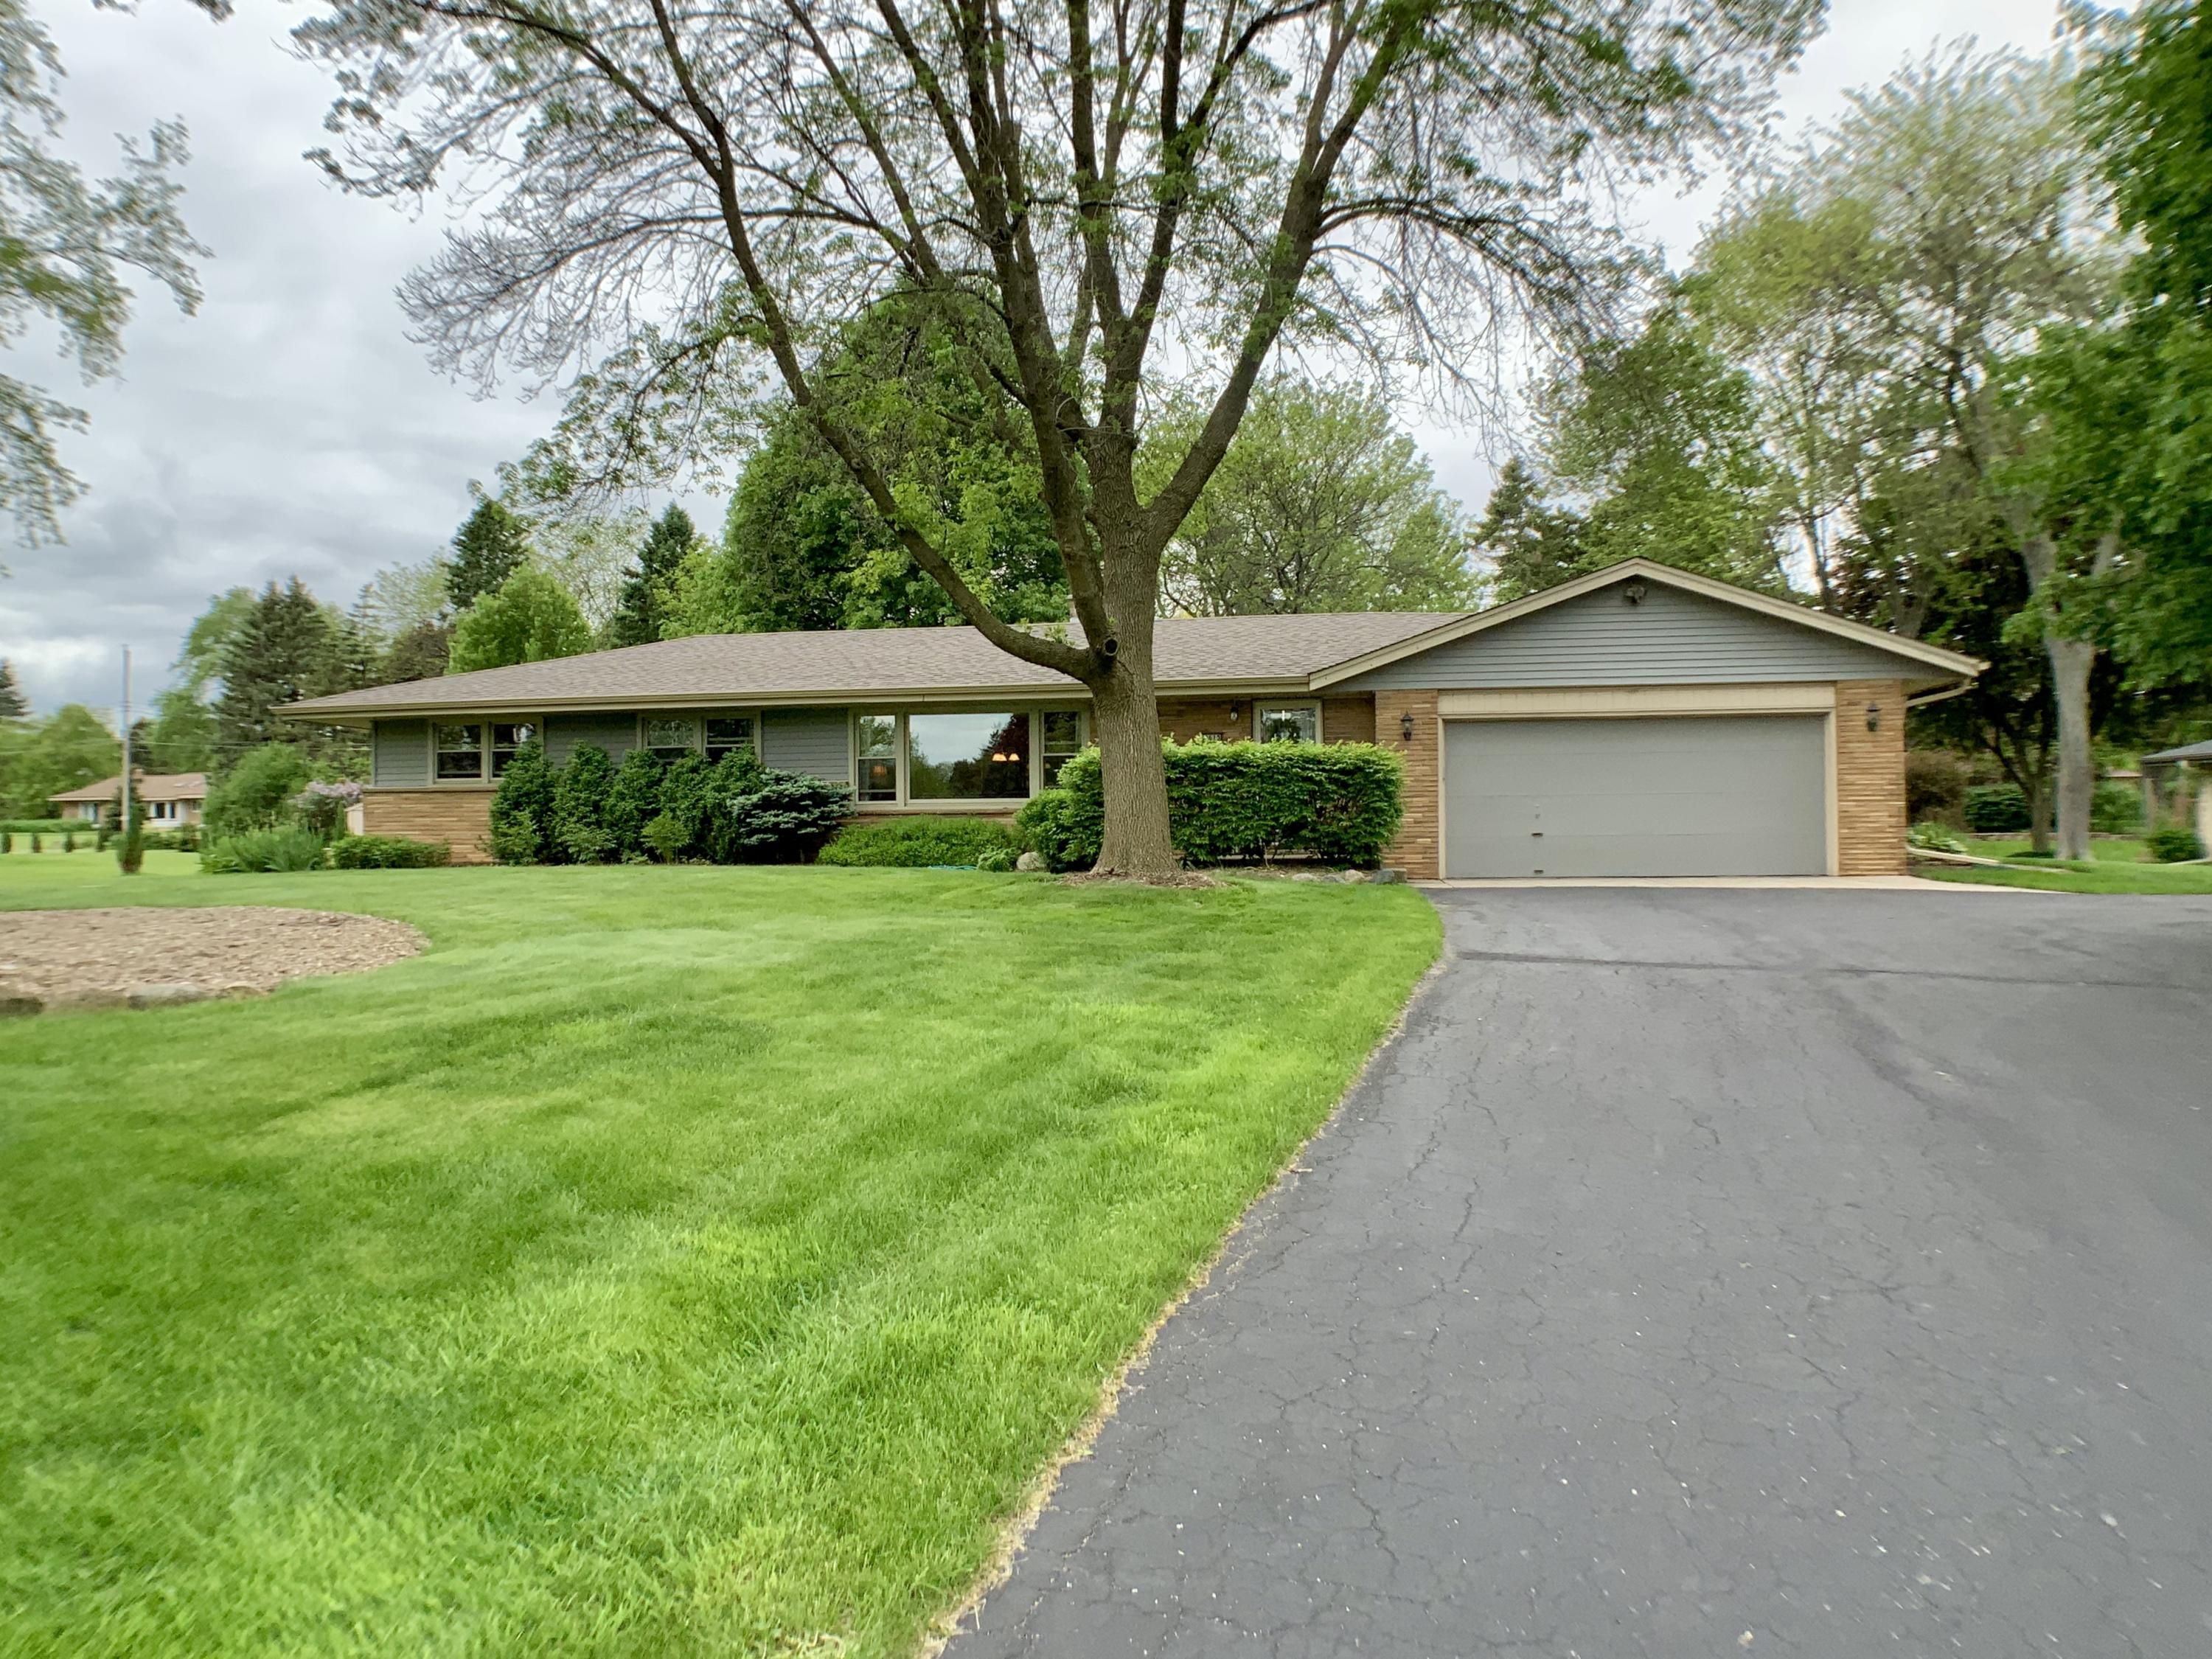 2615 Arbor Dr, Brookfield, Wisconsin 53005, 3 Bedrooms Bedrooms, ,1 BathroomBathrooms,Single-Family,For Sale,Arbor Dr,1691288